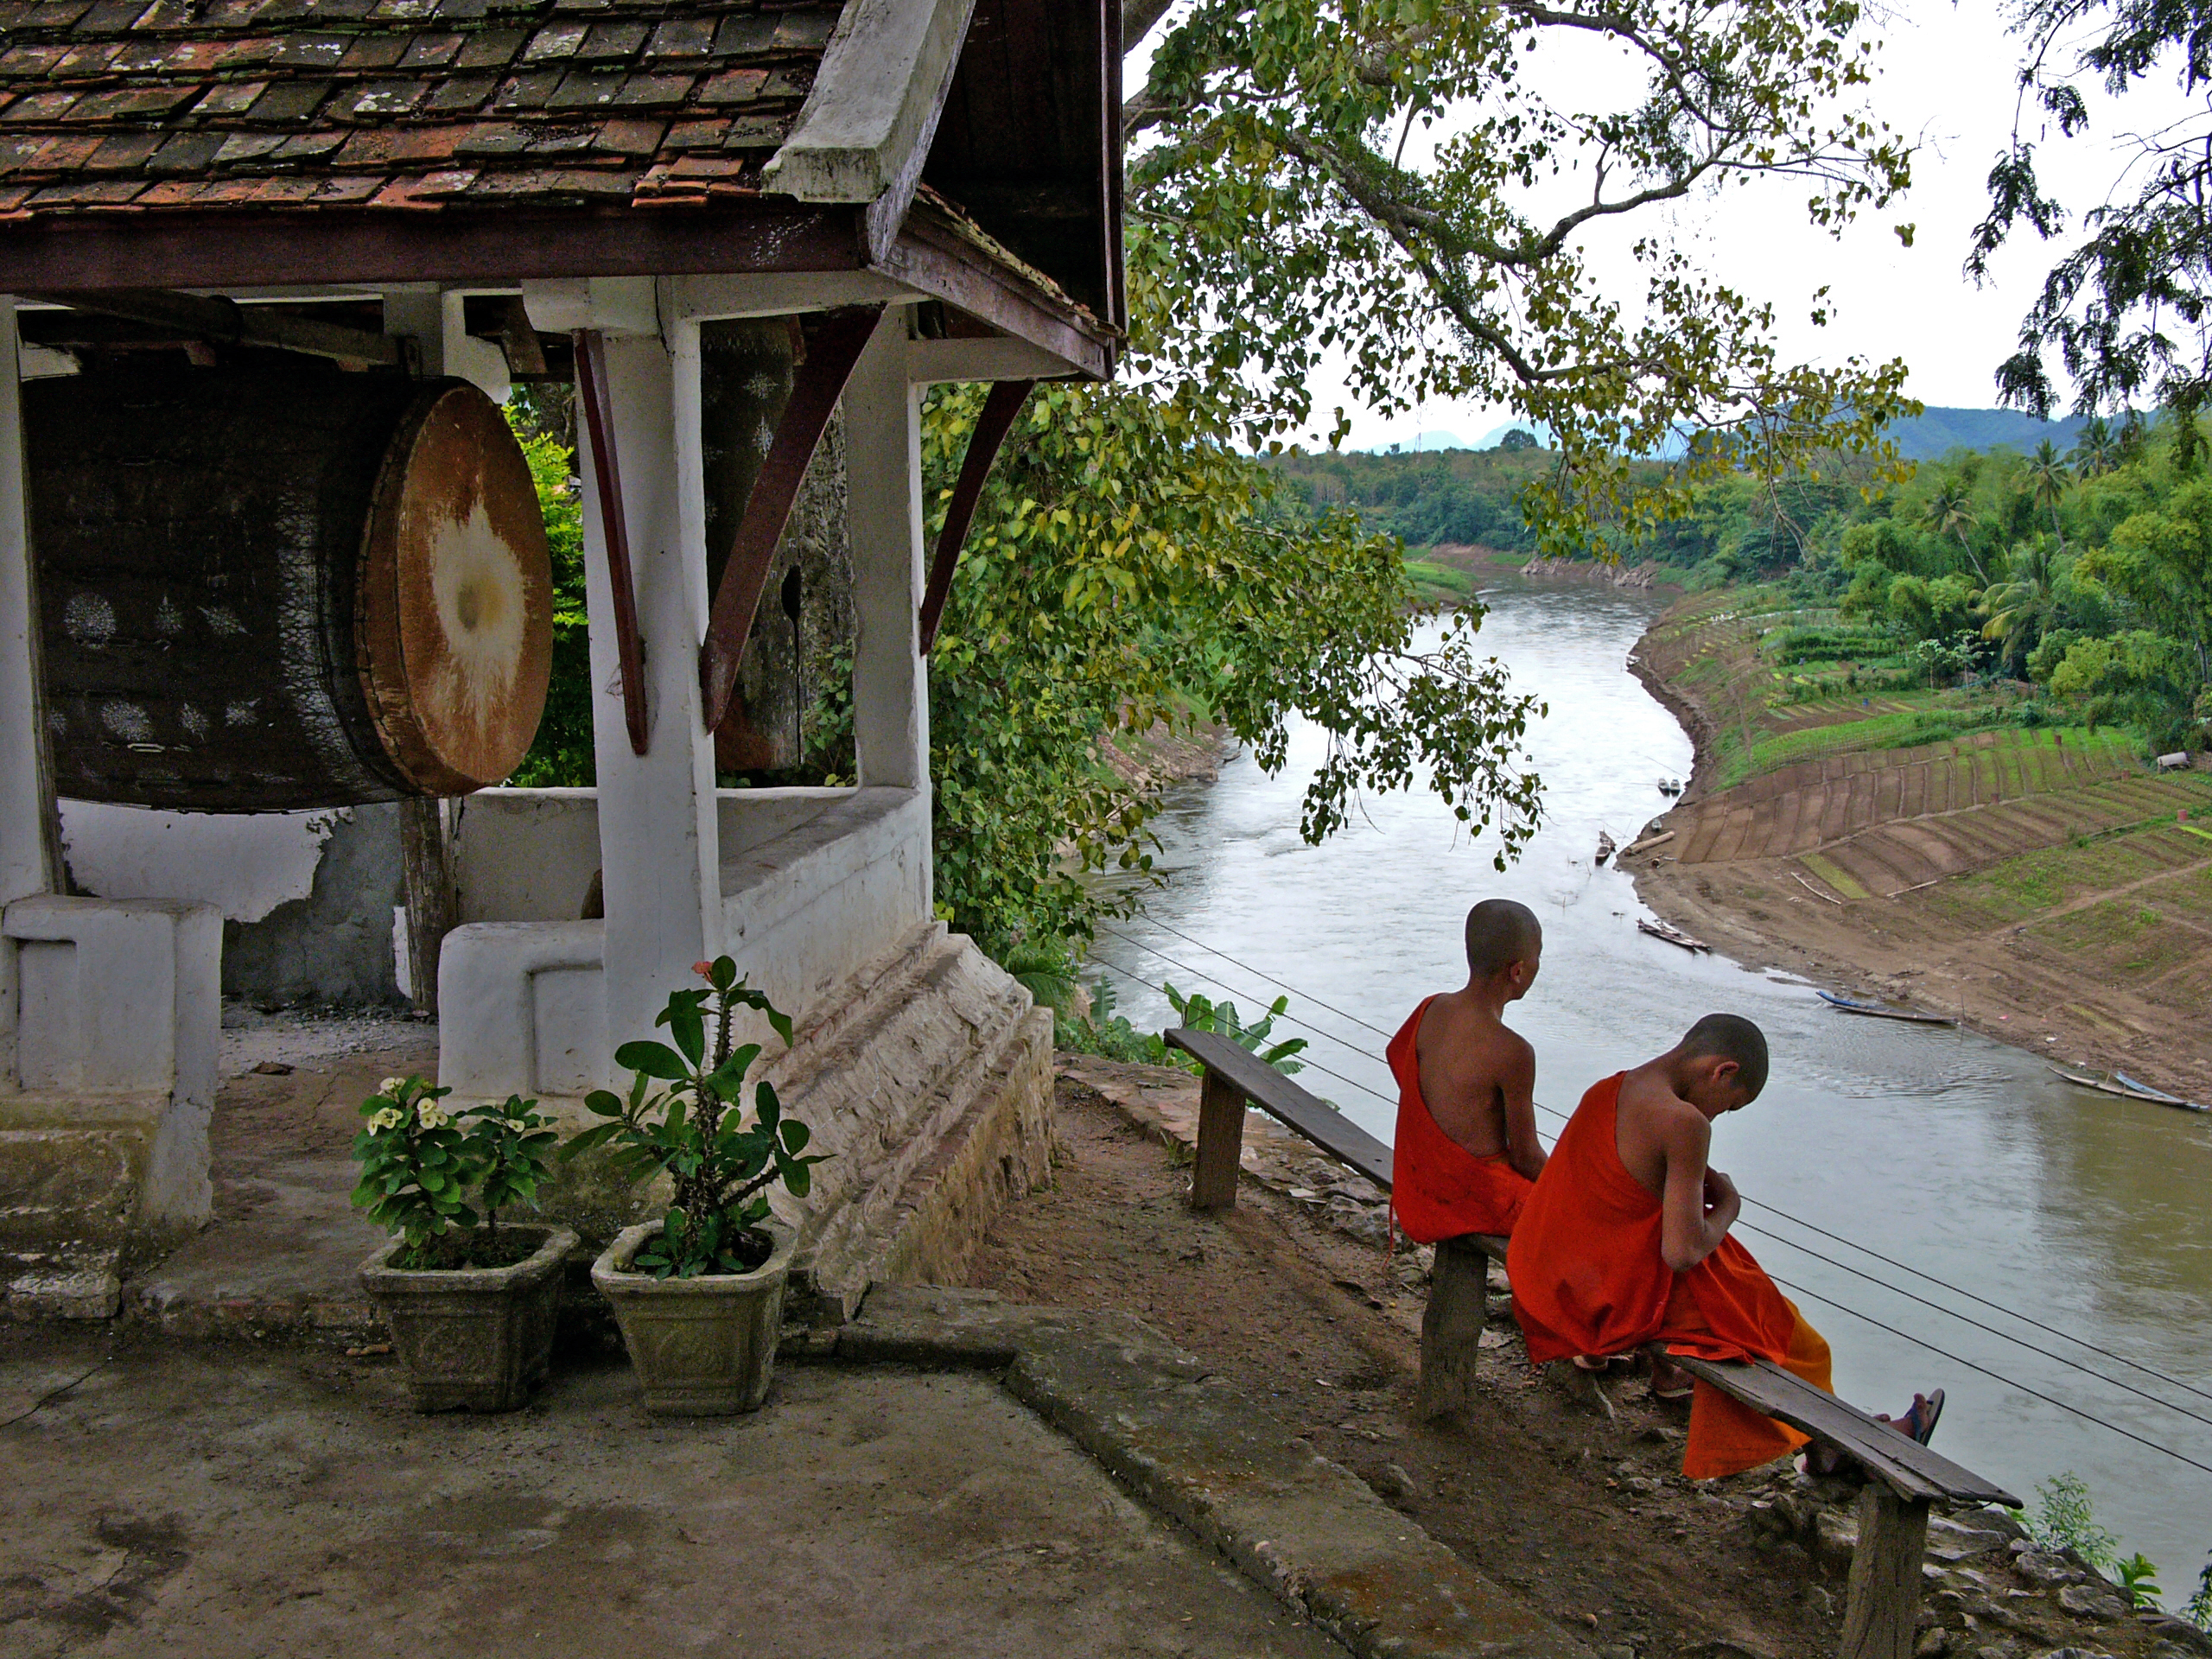 Photographing Laos with Martin Stuart-Fox